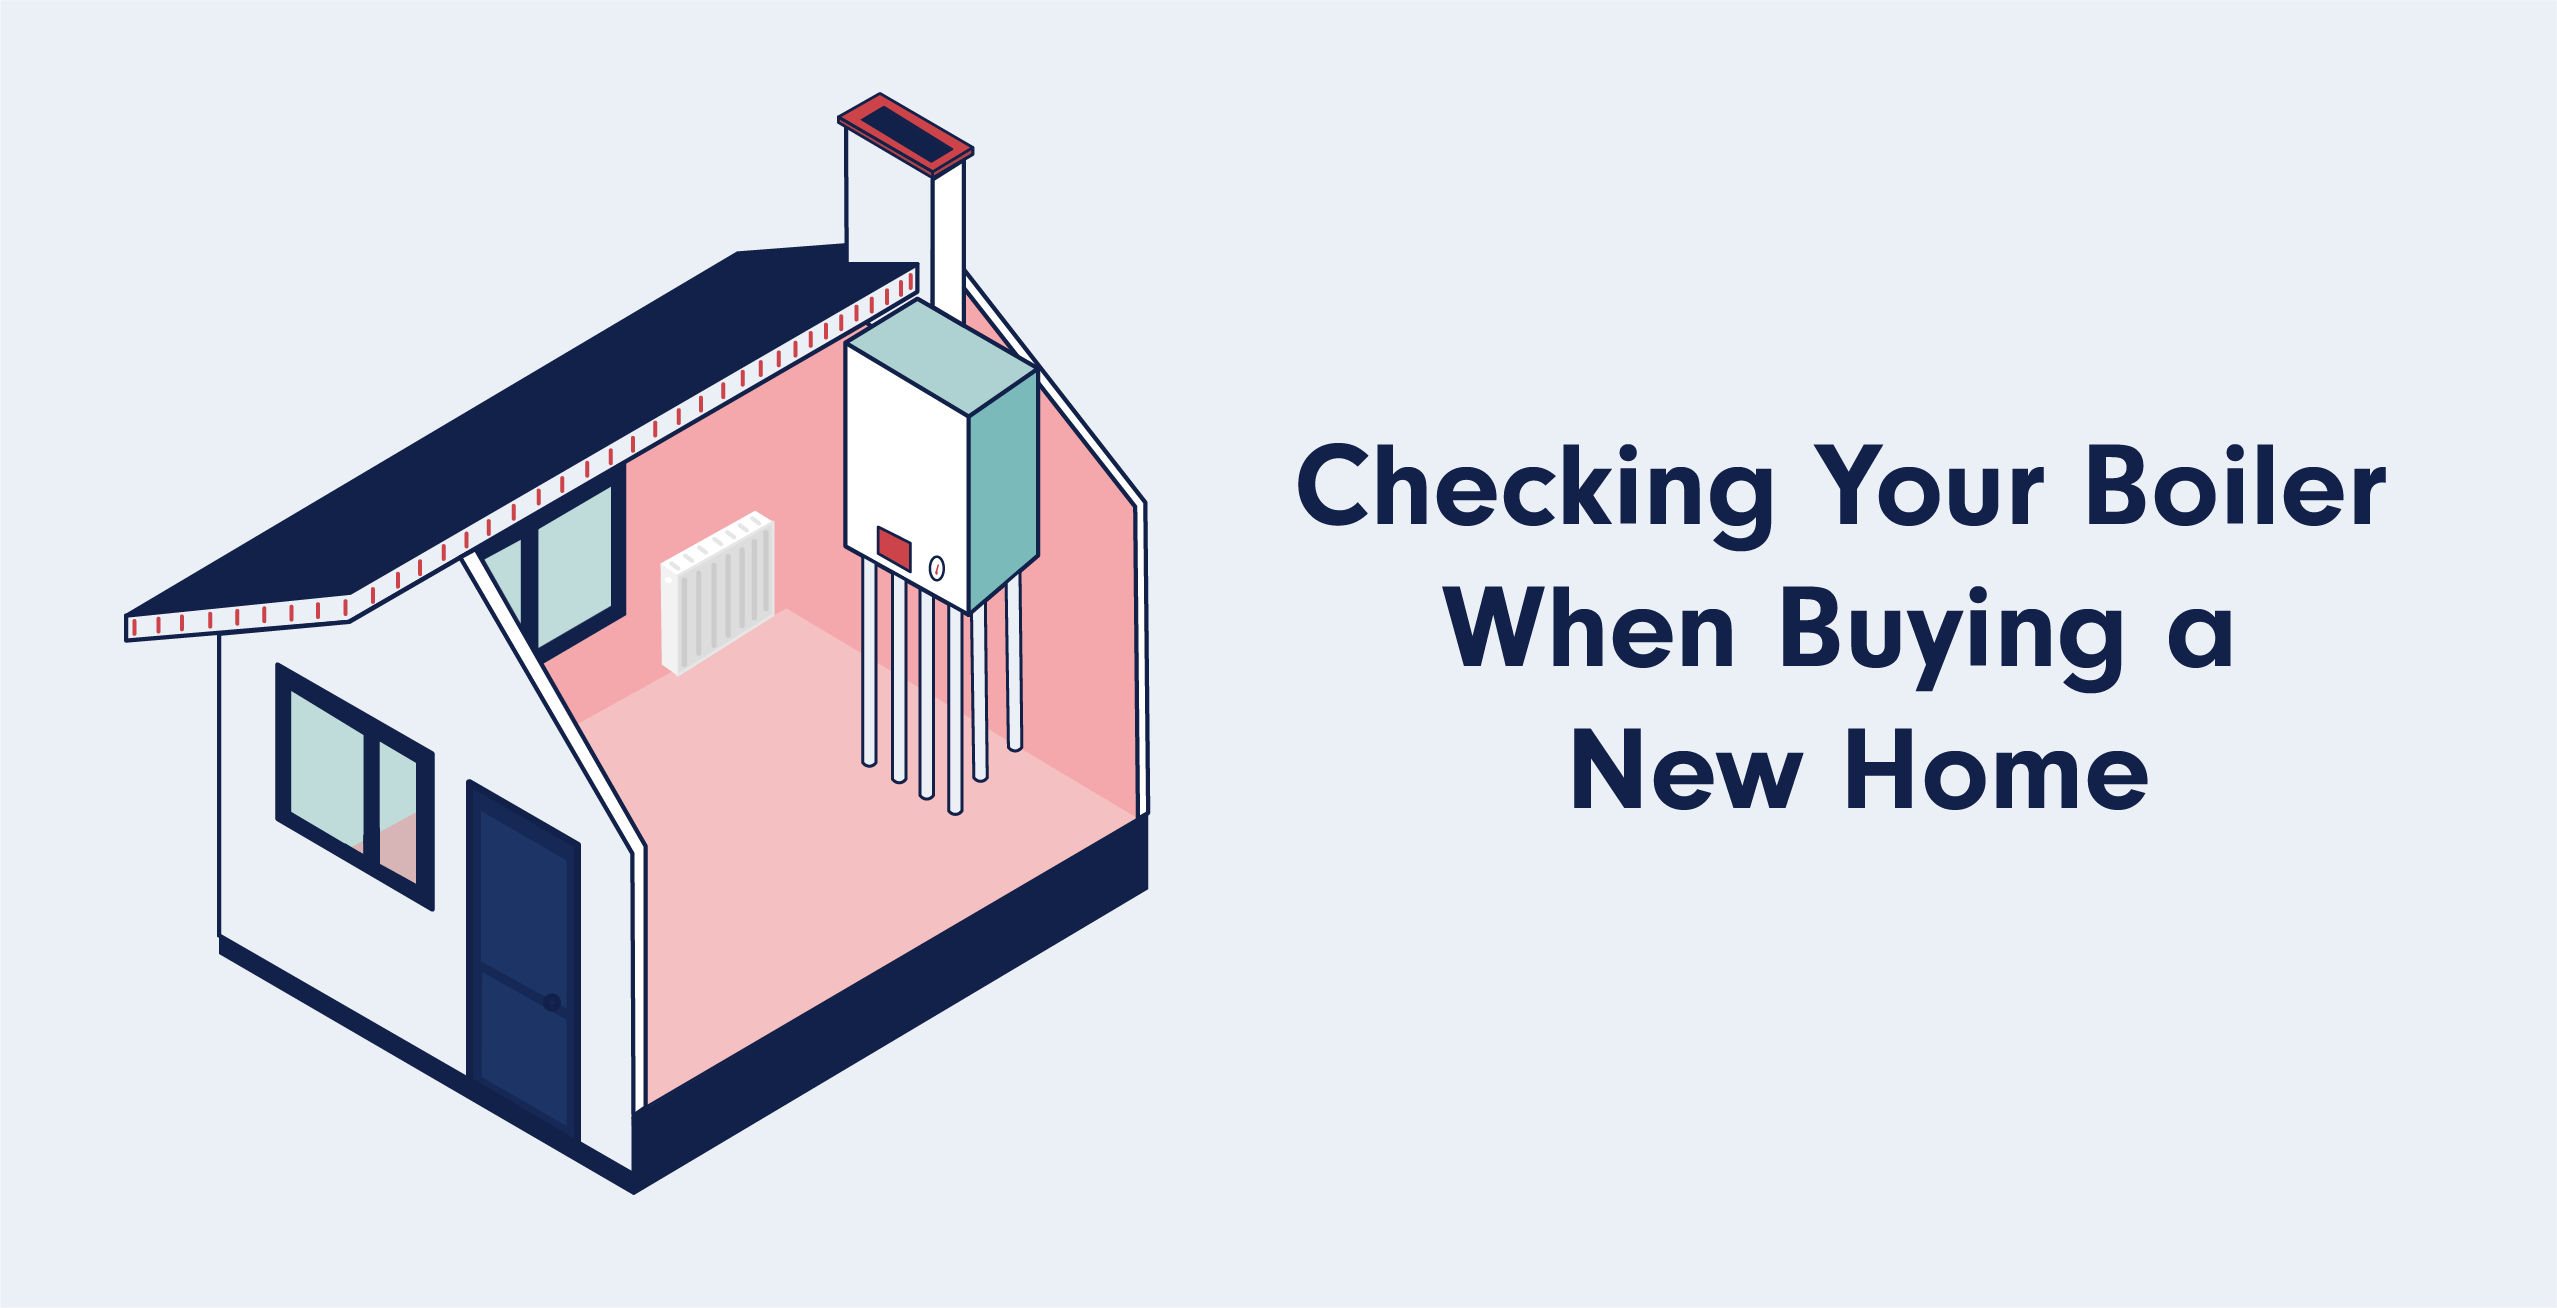 Checking Your Boiler When Buying a New Home